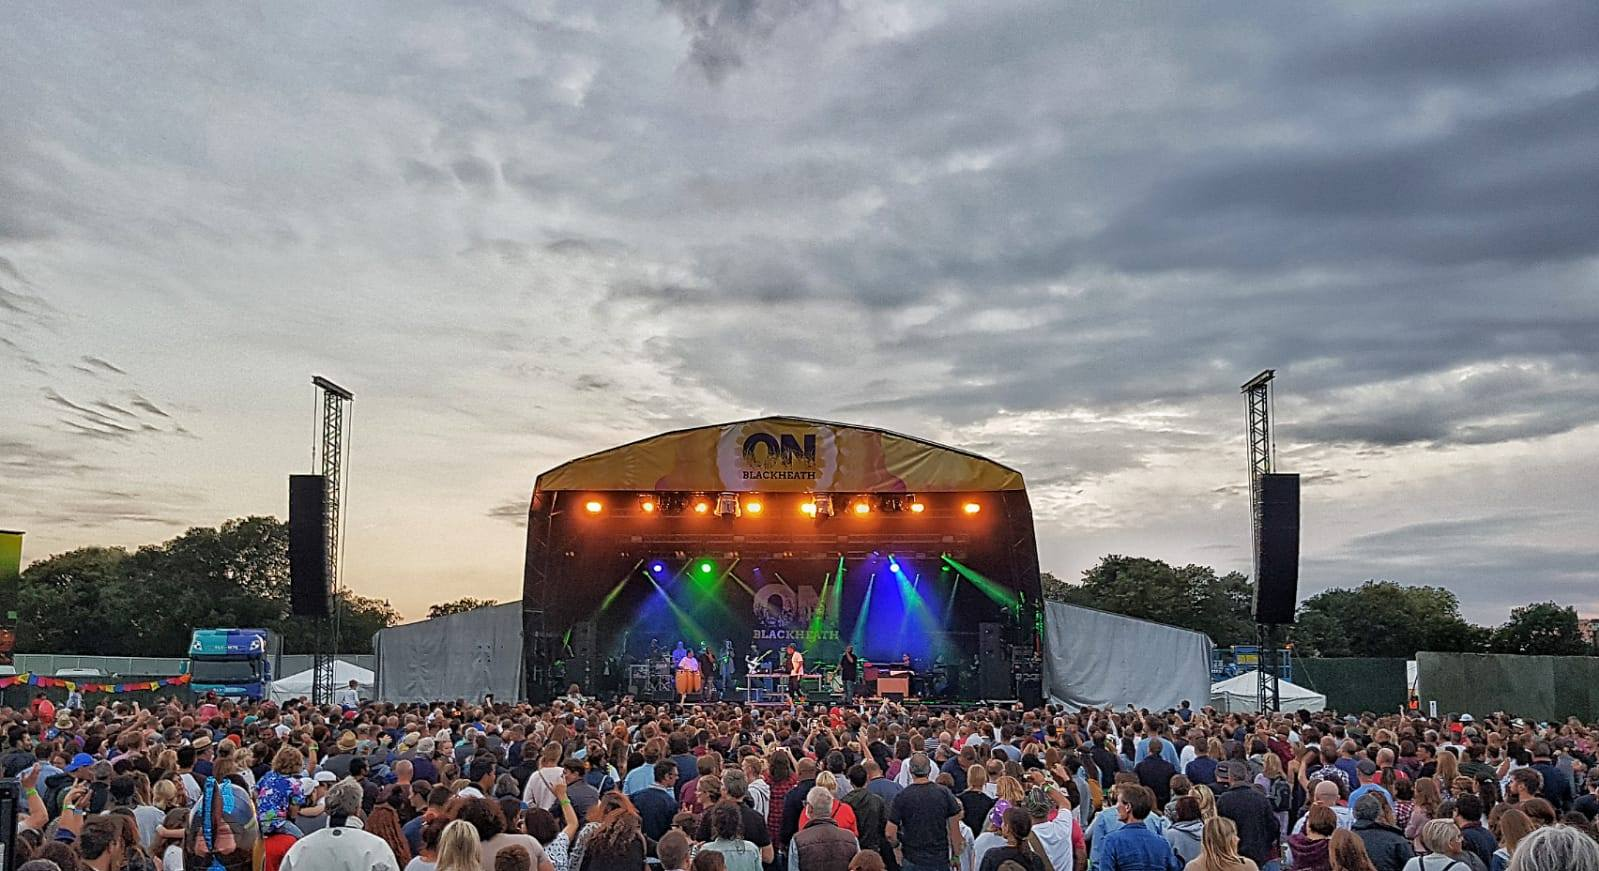 OnBlackheath news: The sun may be going down, but we're not going anywhere yet……